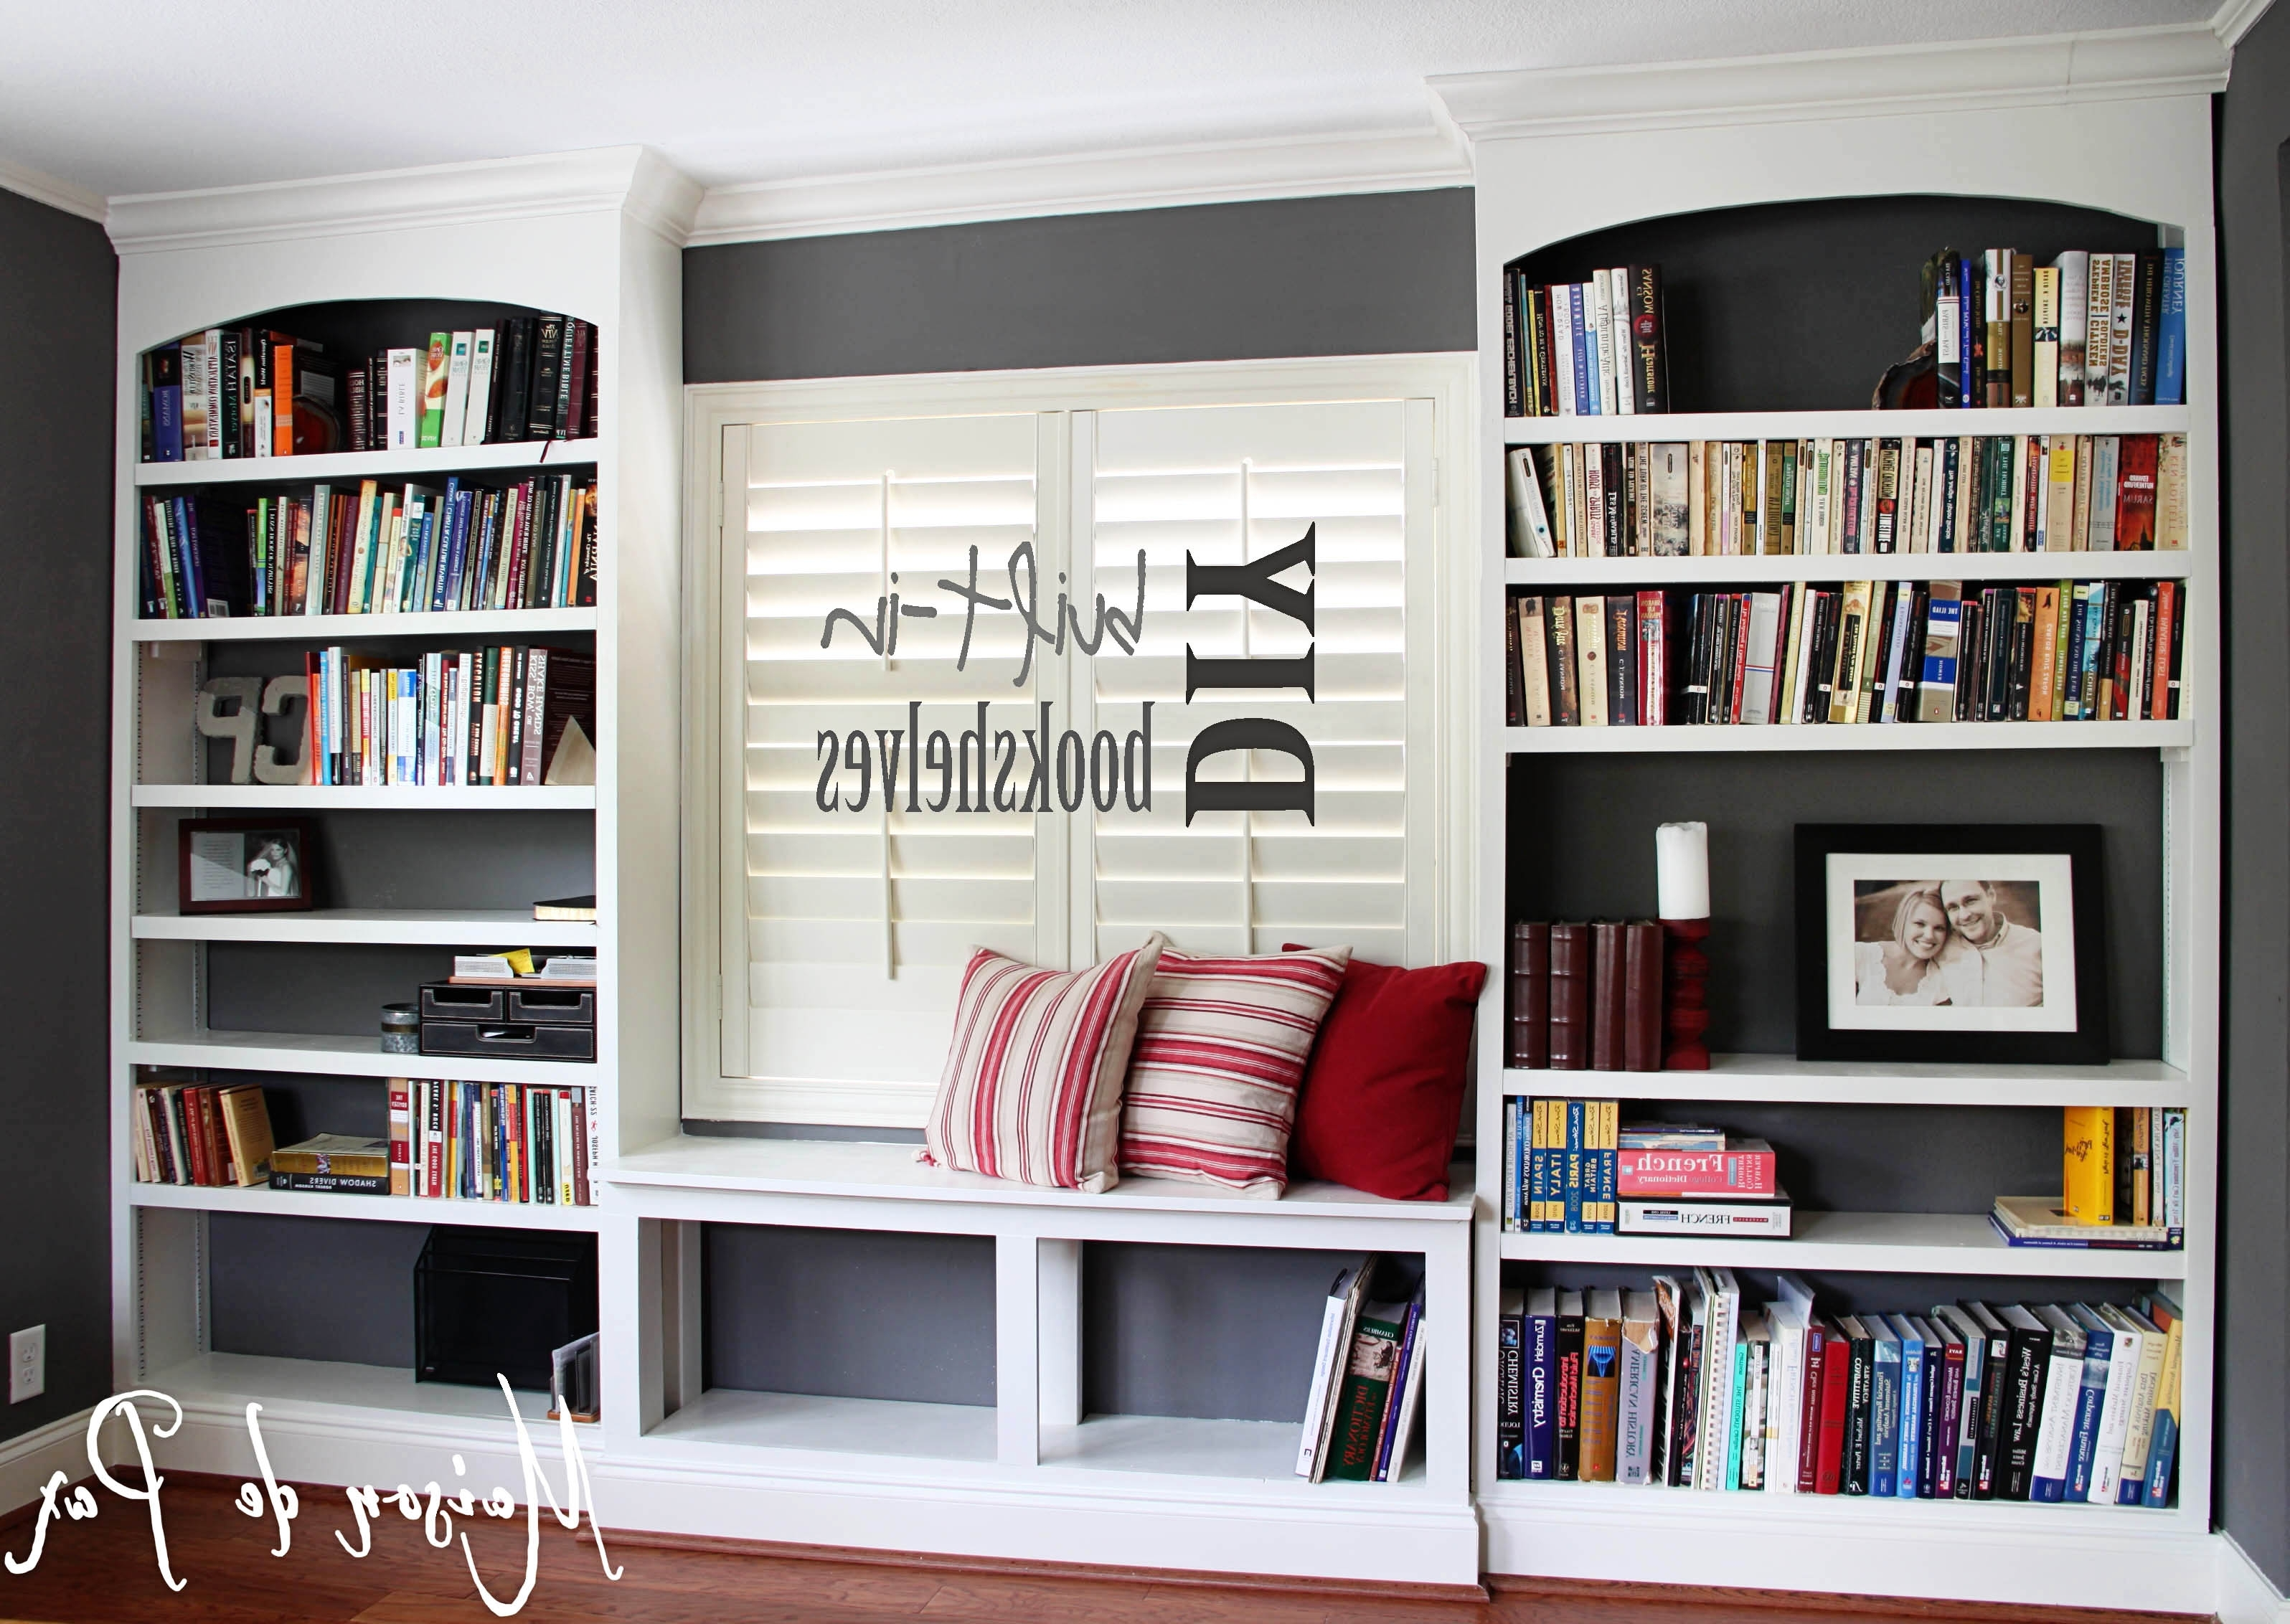 Diy Bookcases With Regard To Current Diy Built In Bookshelves – Maison De Pax (View 5 of 15)